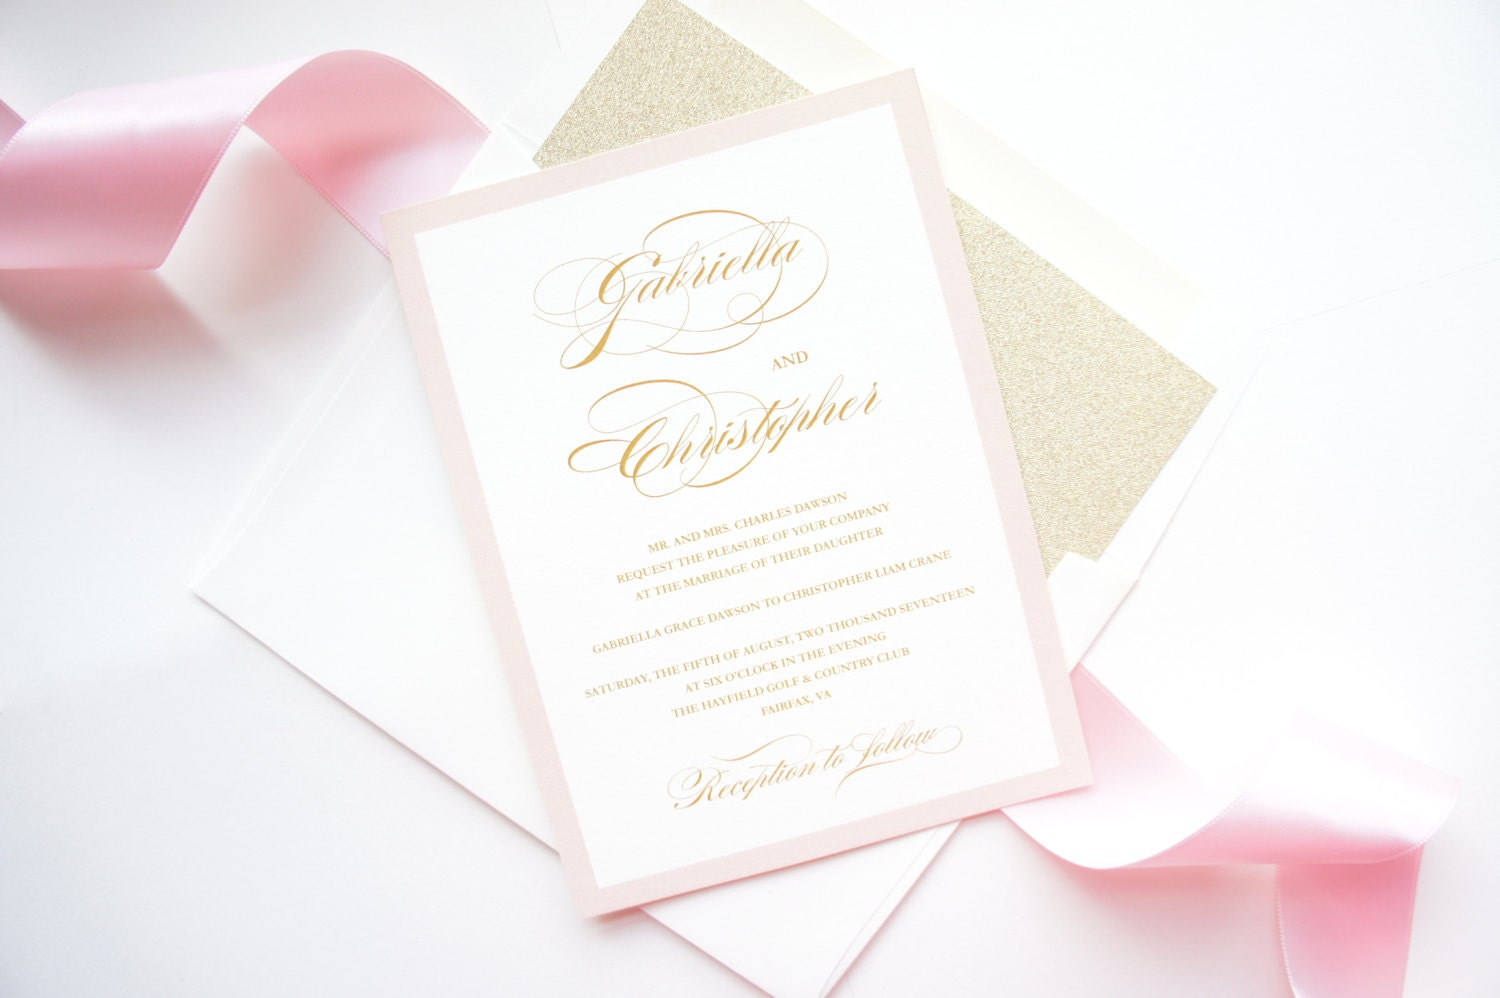 Blush And Ivory Wedding Invitations: Pink And Gold Wedding Invitations Ivory Cream Blush Gold